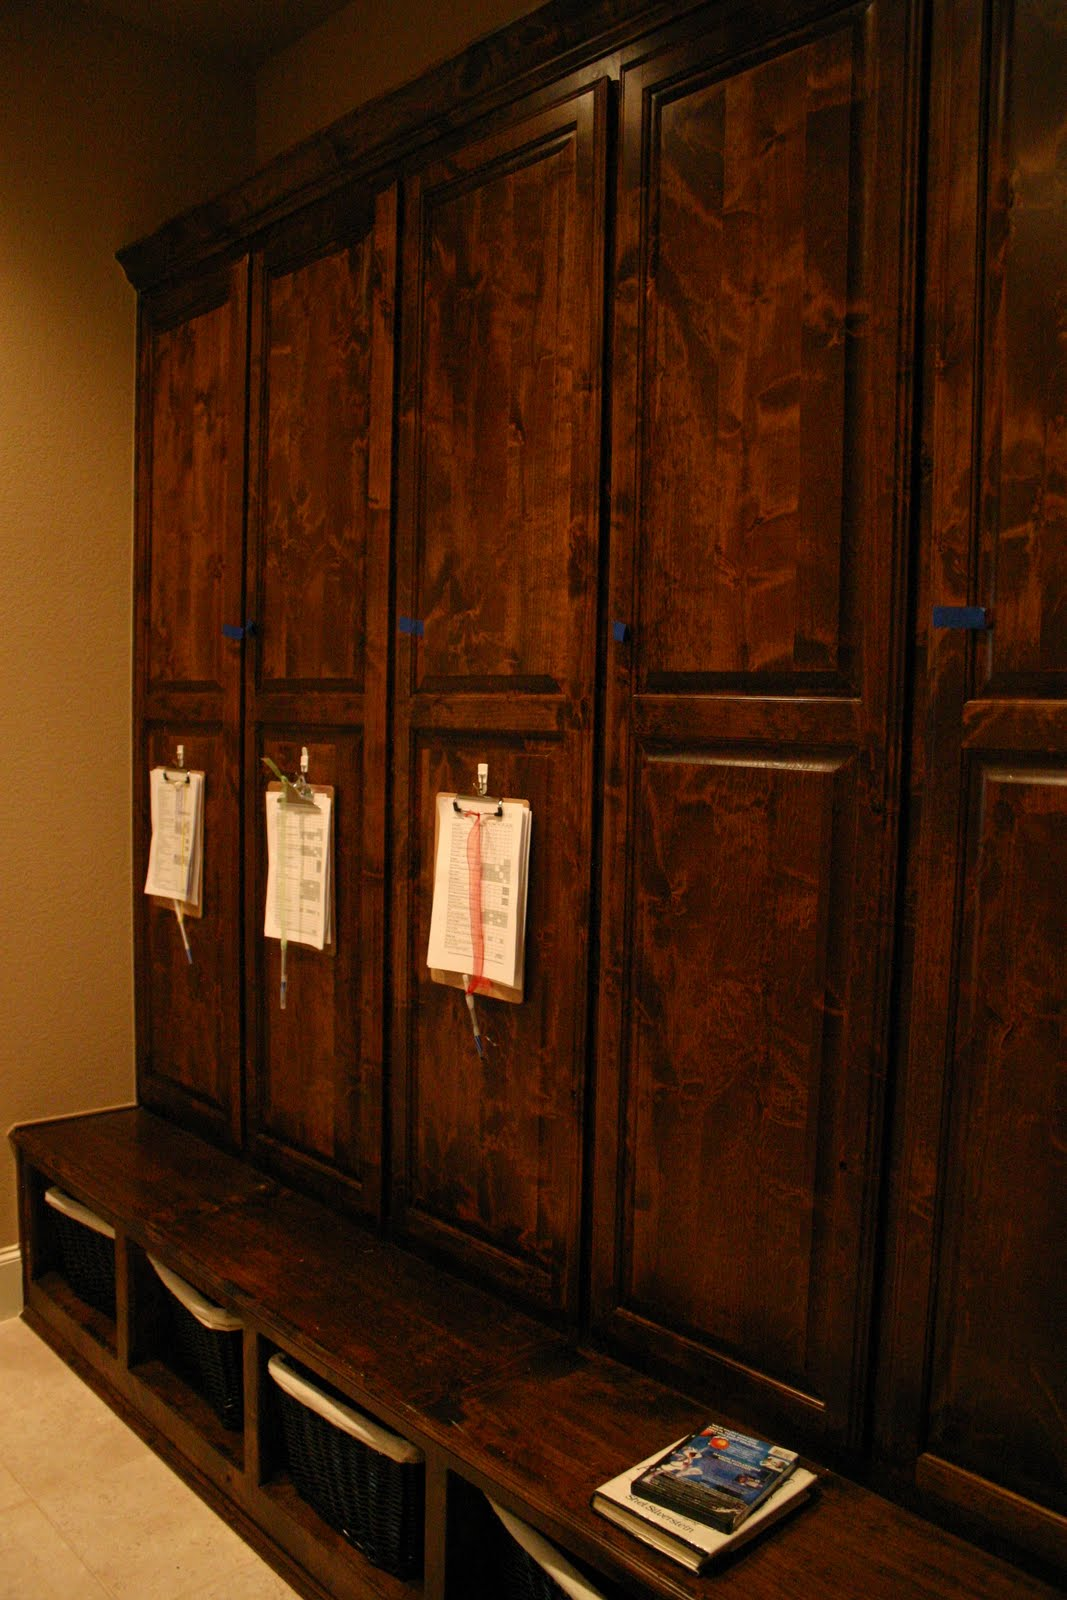 Mudroom lockers with doors - Mudroom Lockers With Doors 59